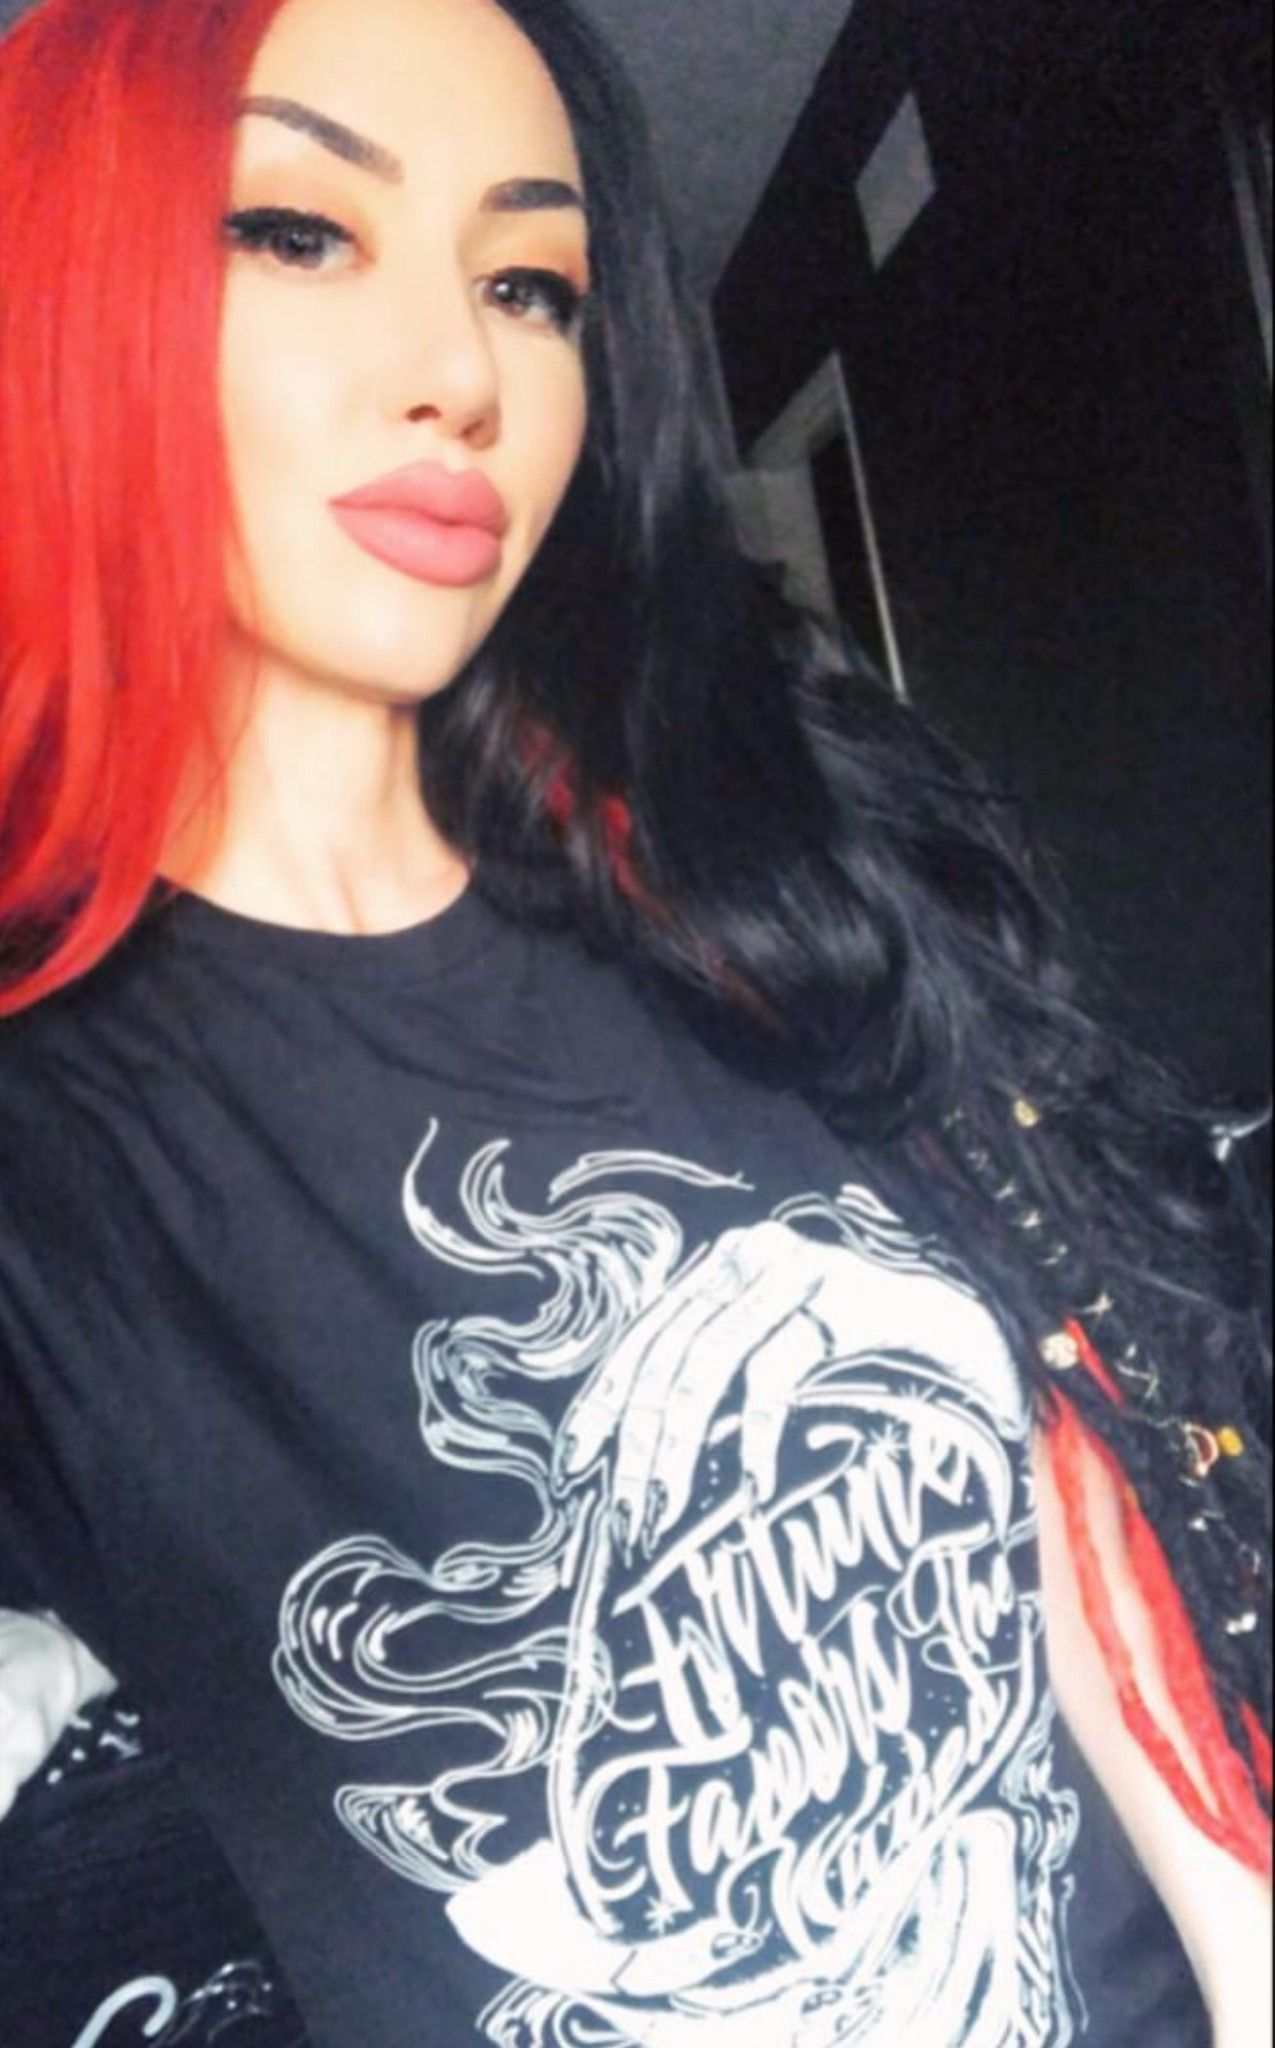 Pin by Bree Thompson on Ash Costello NYD T shirts for